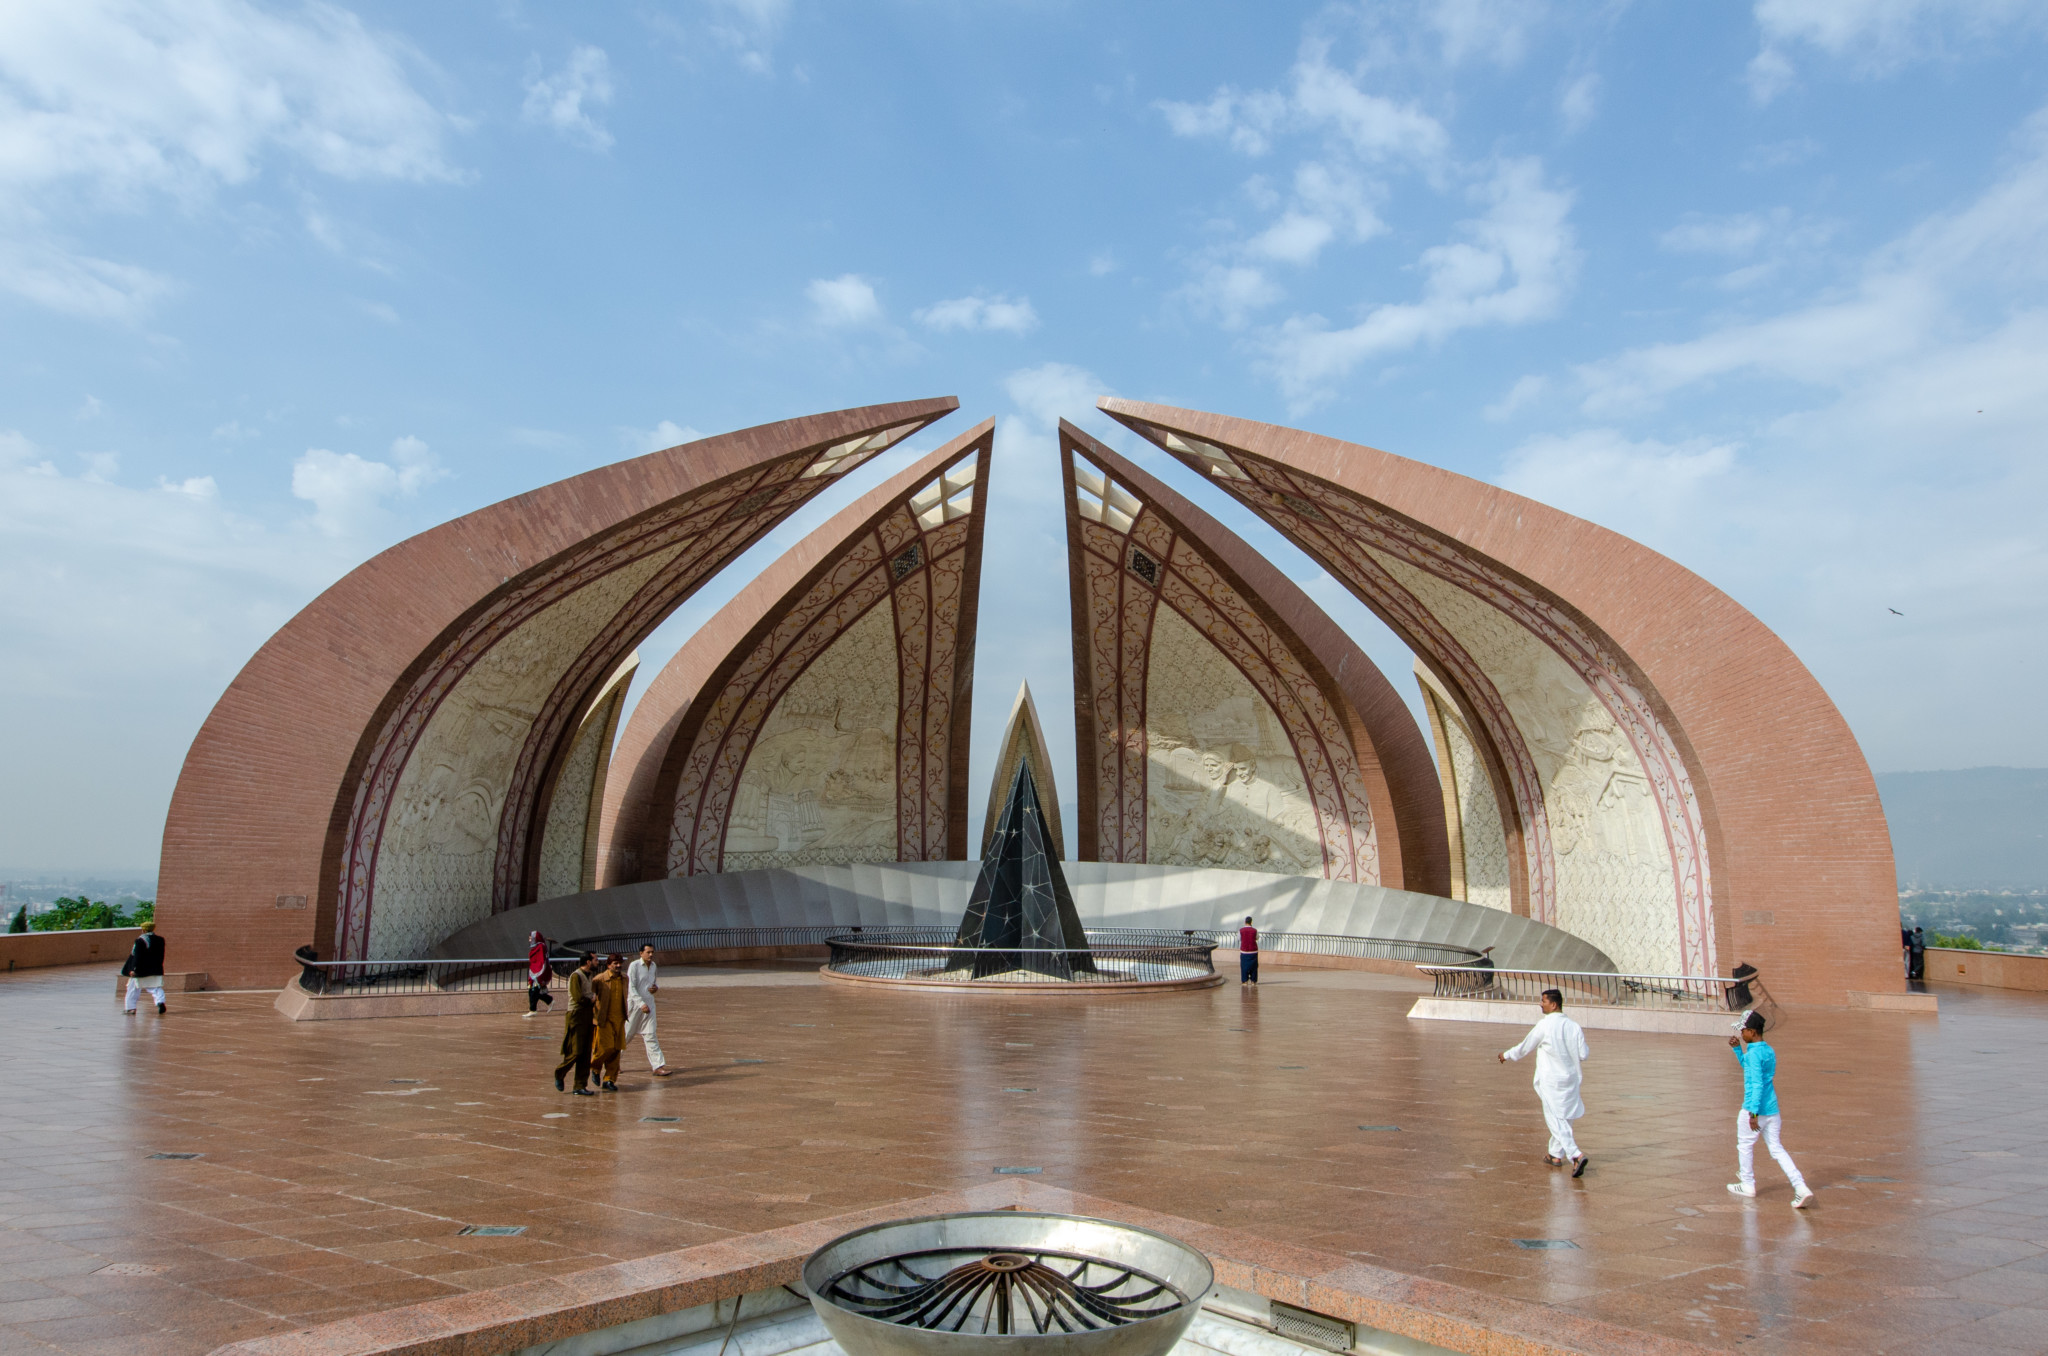 Pakistan Monument in Islamabad Pakistan